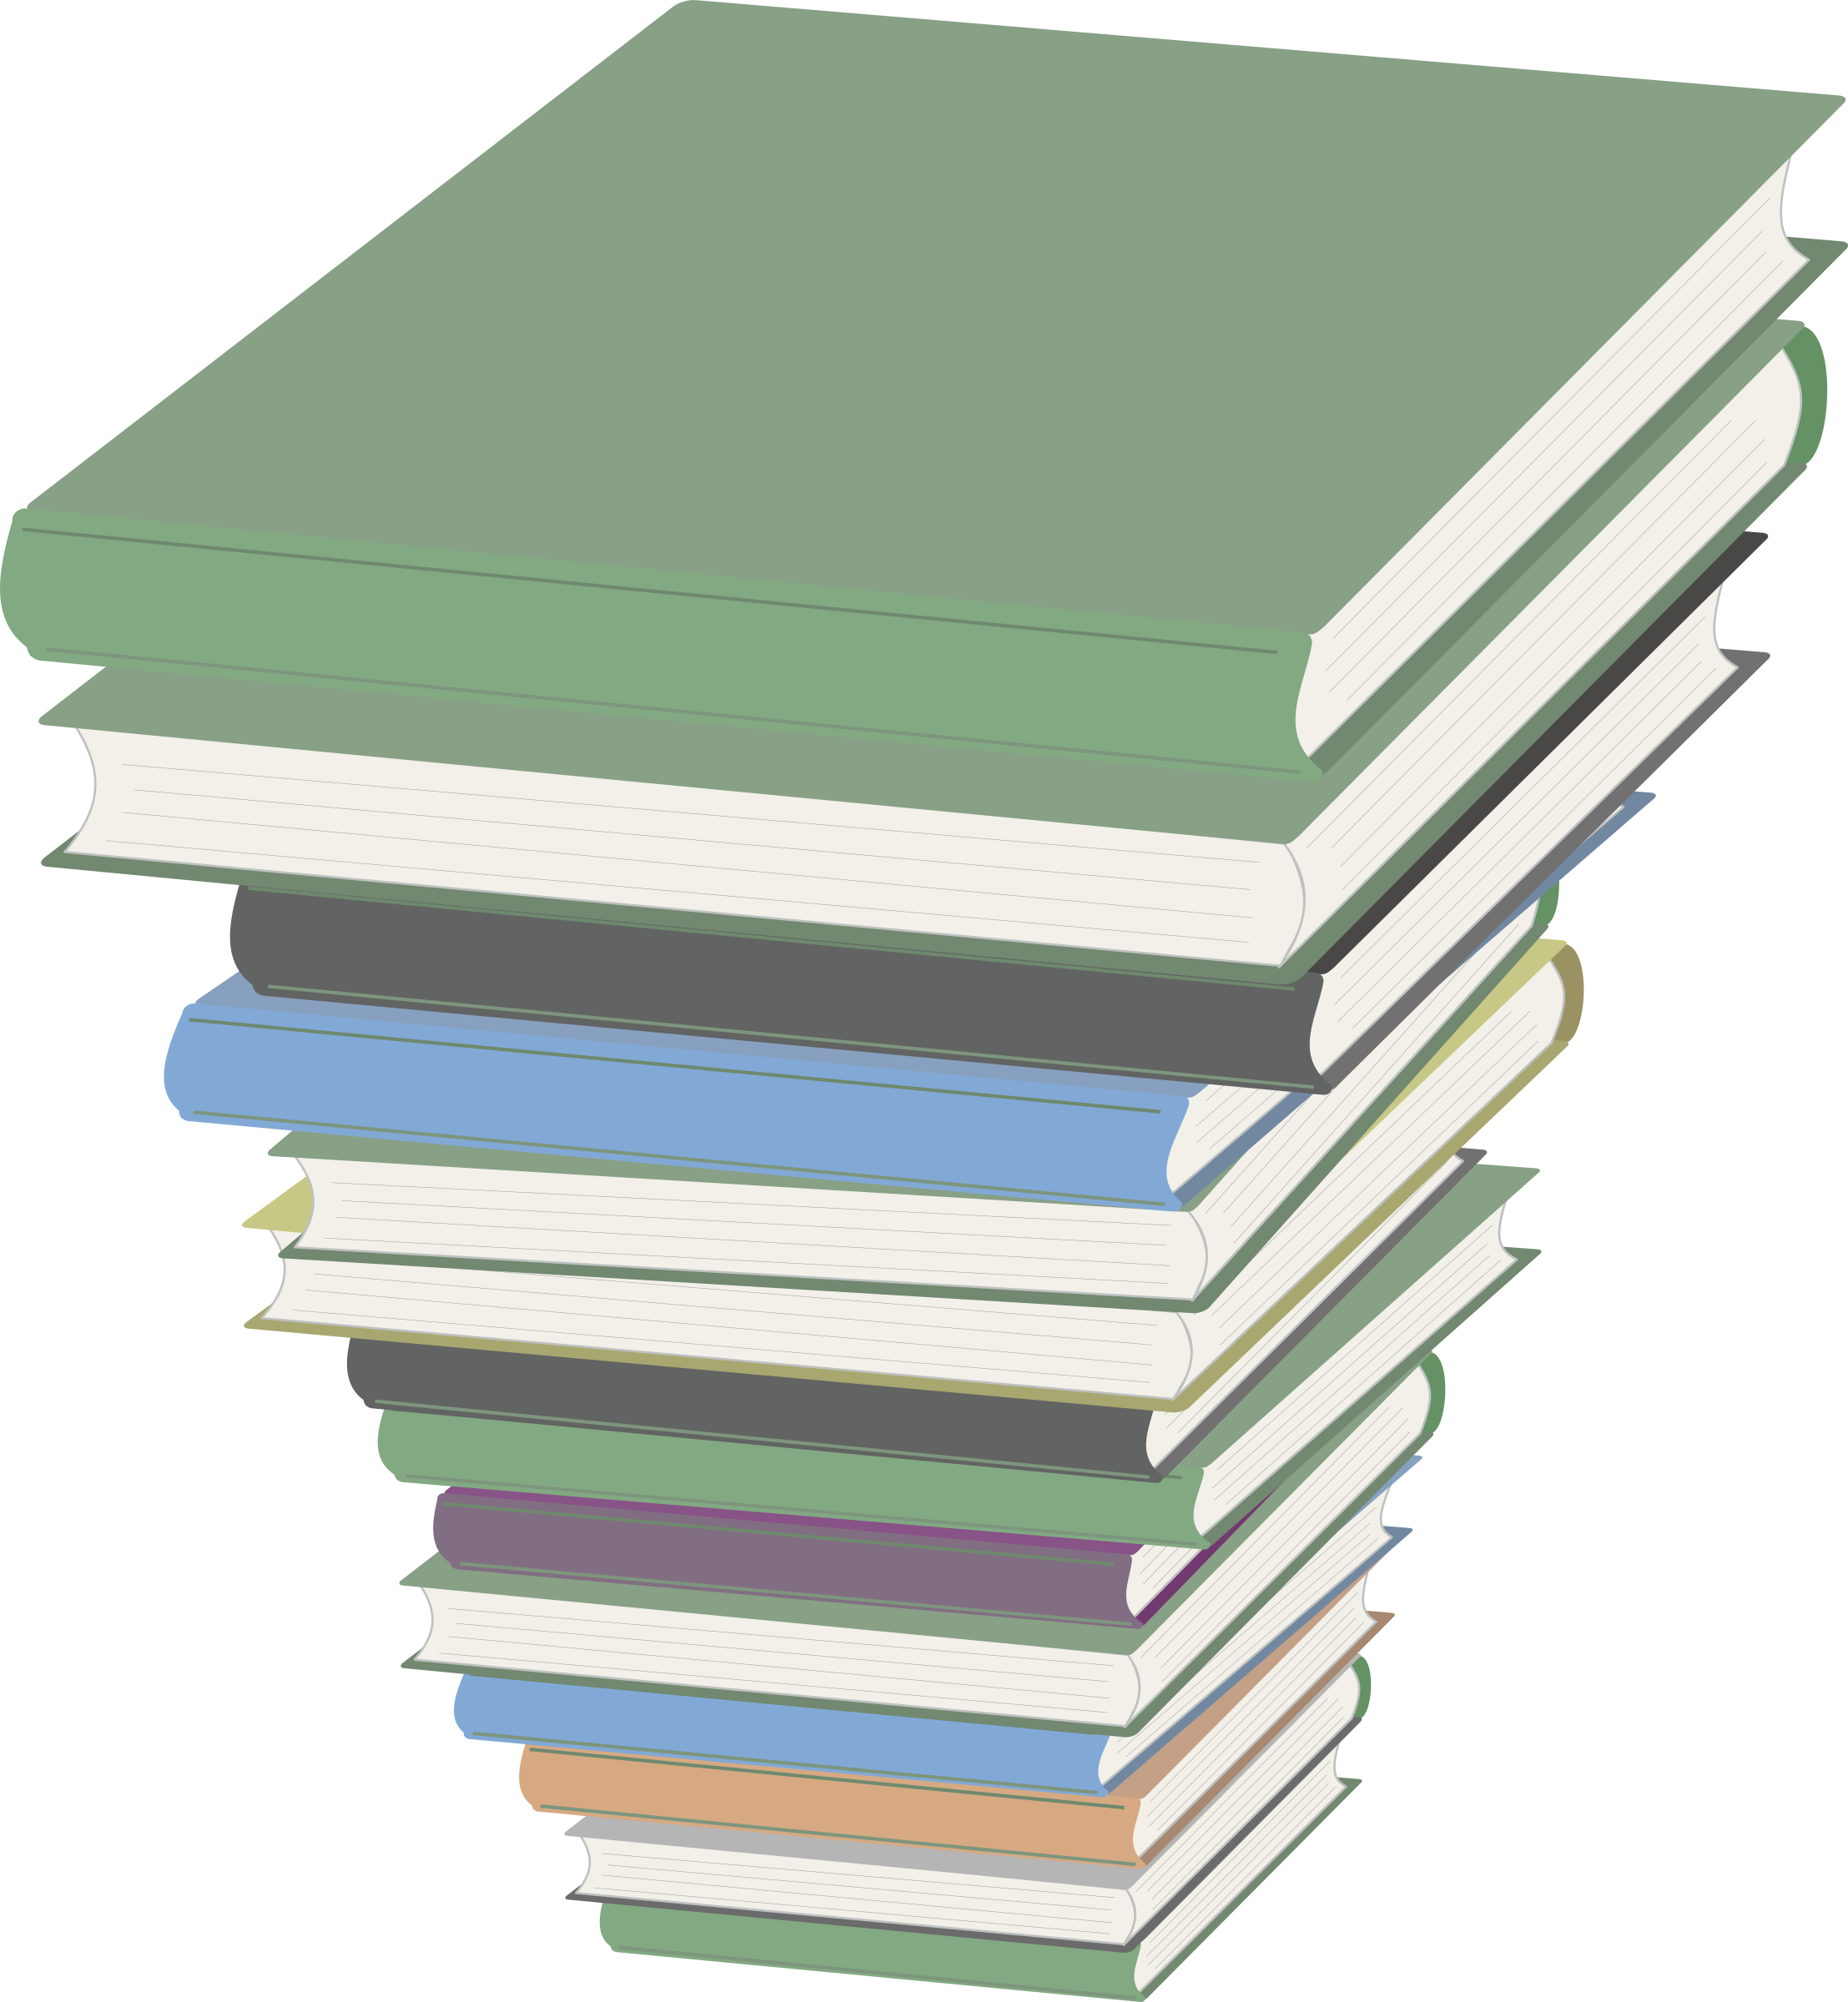 Bobook clipart piled Pile Pile Clipart of of